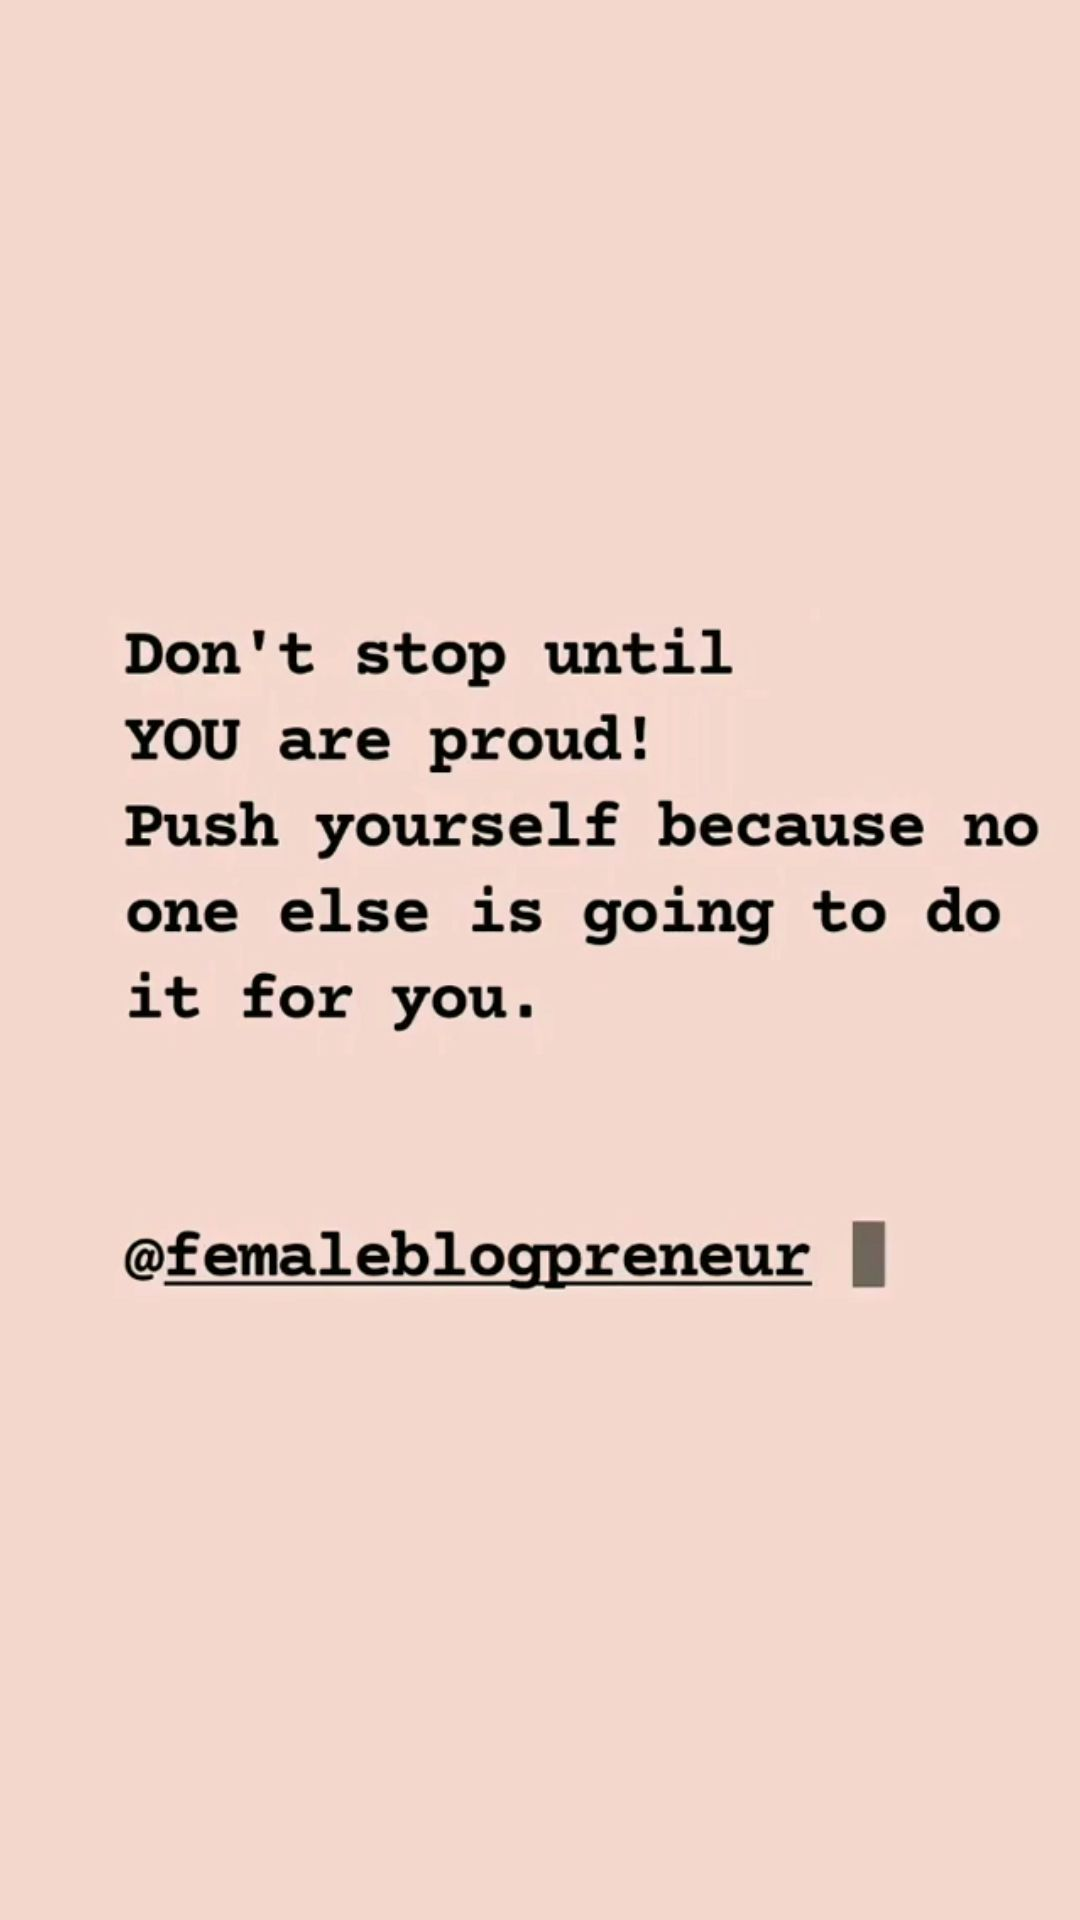 Don't stop until you are proud. Push yourself because no one else is going to do it for you.